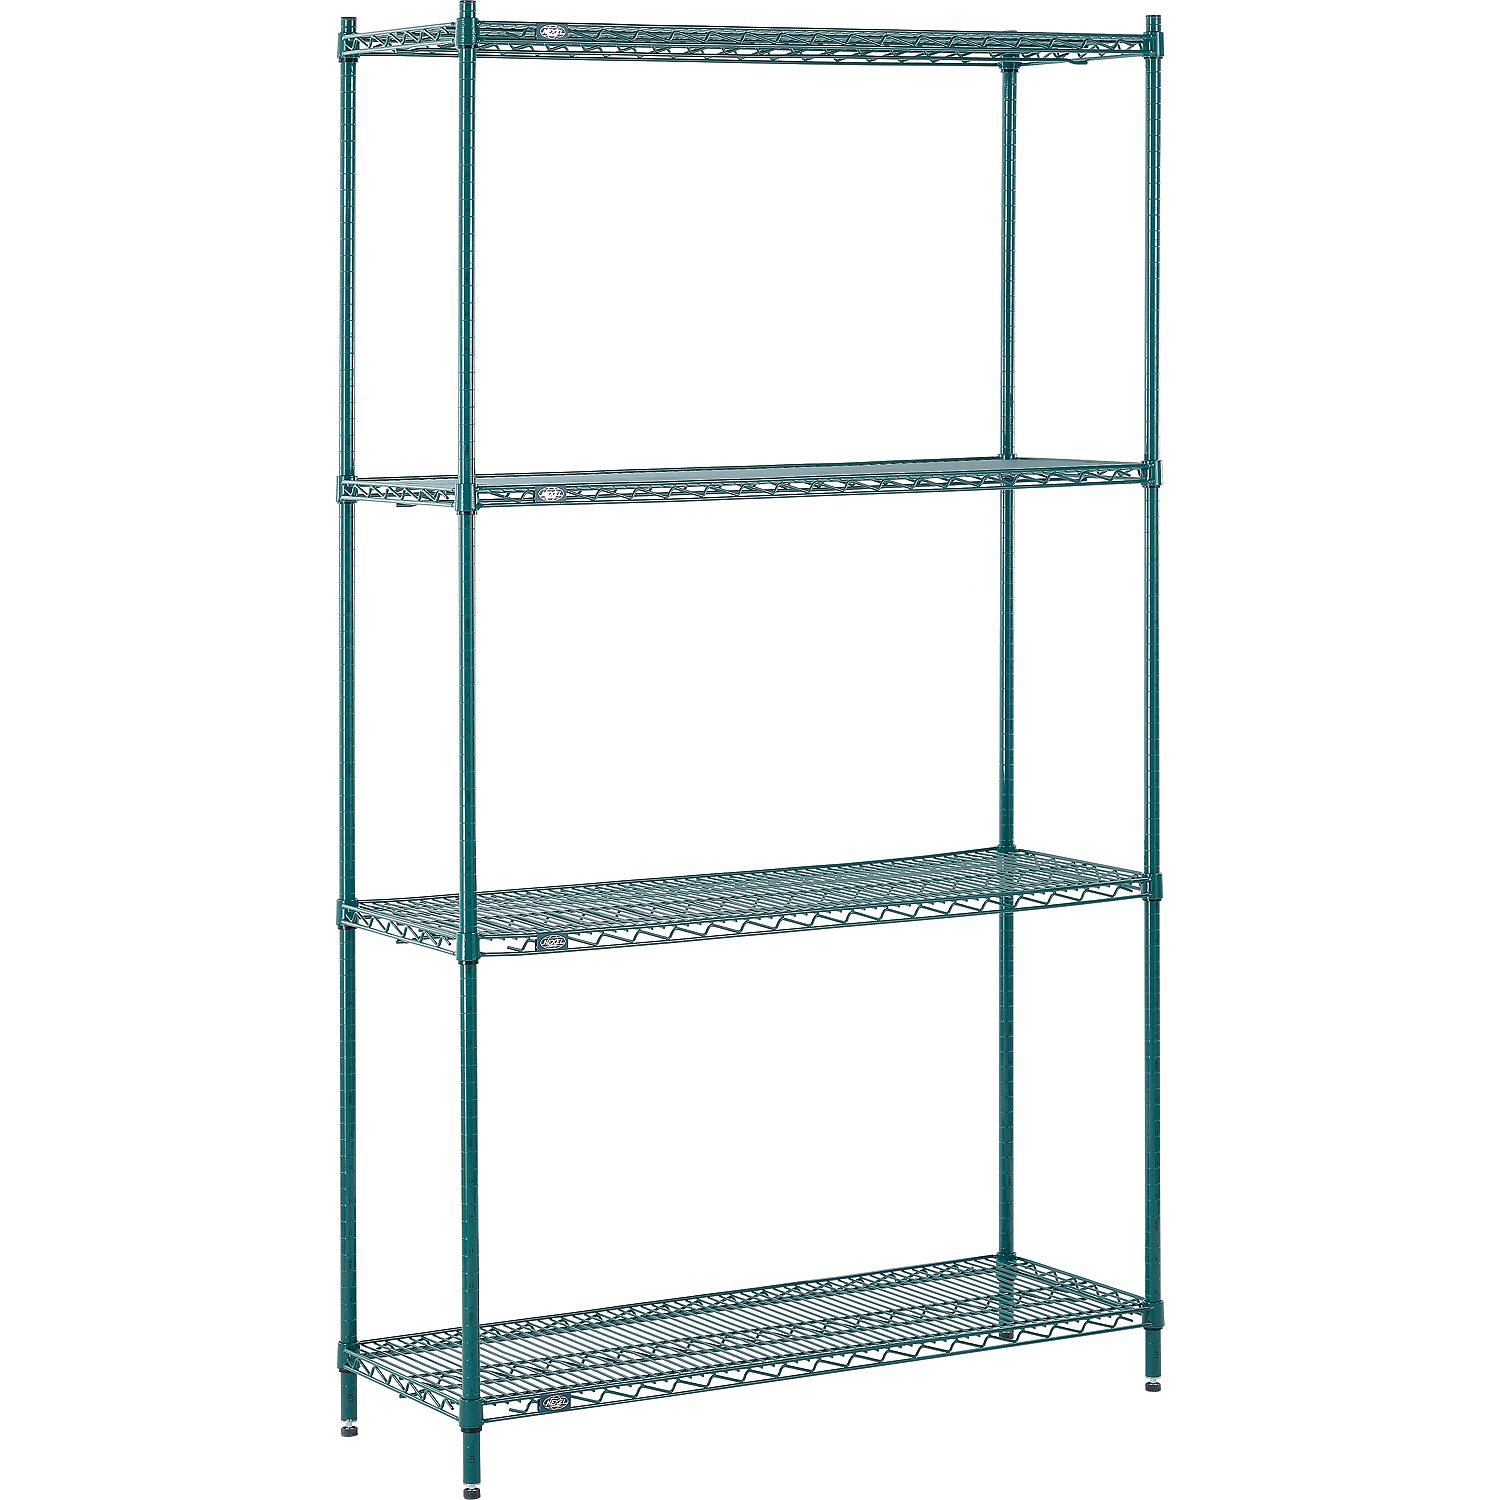 "Nexel Poly-Green Antimicrobial Adjustable Wire Shelving Unit, 4 Tier, Heavy Duty Storage Organizer Rack, 54"" x 24"" x 86"", Green"